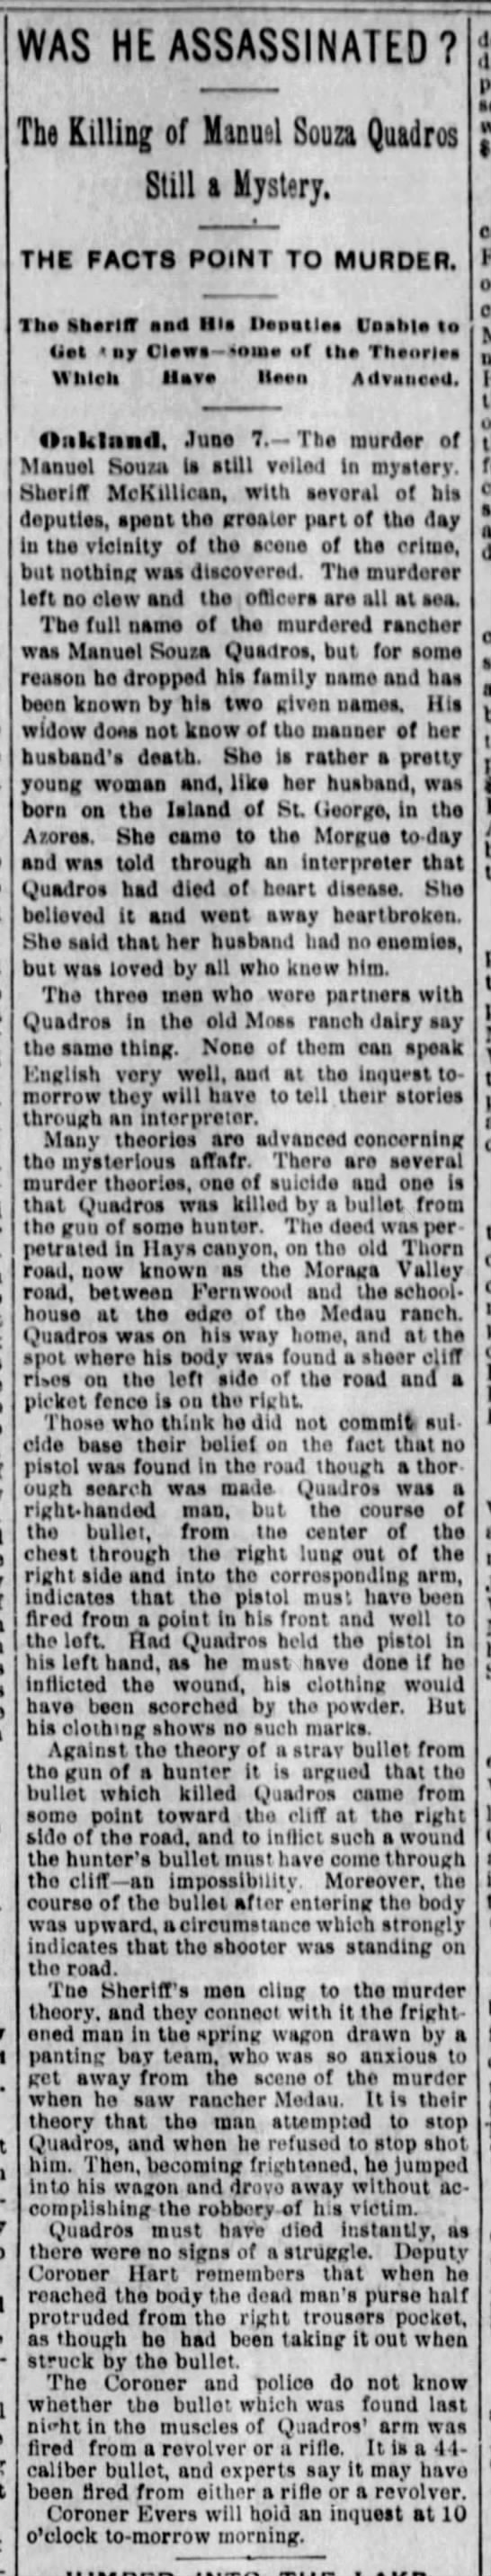 Was He Assassinated? The Killing of Manuel Souza Quadros - Still a Mystery June 08, 1894 -